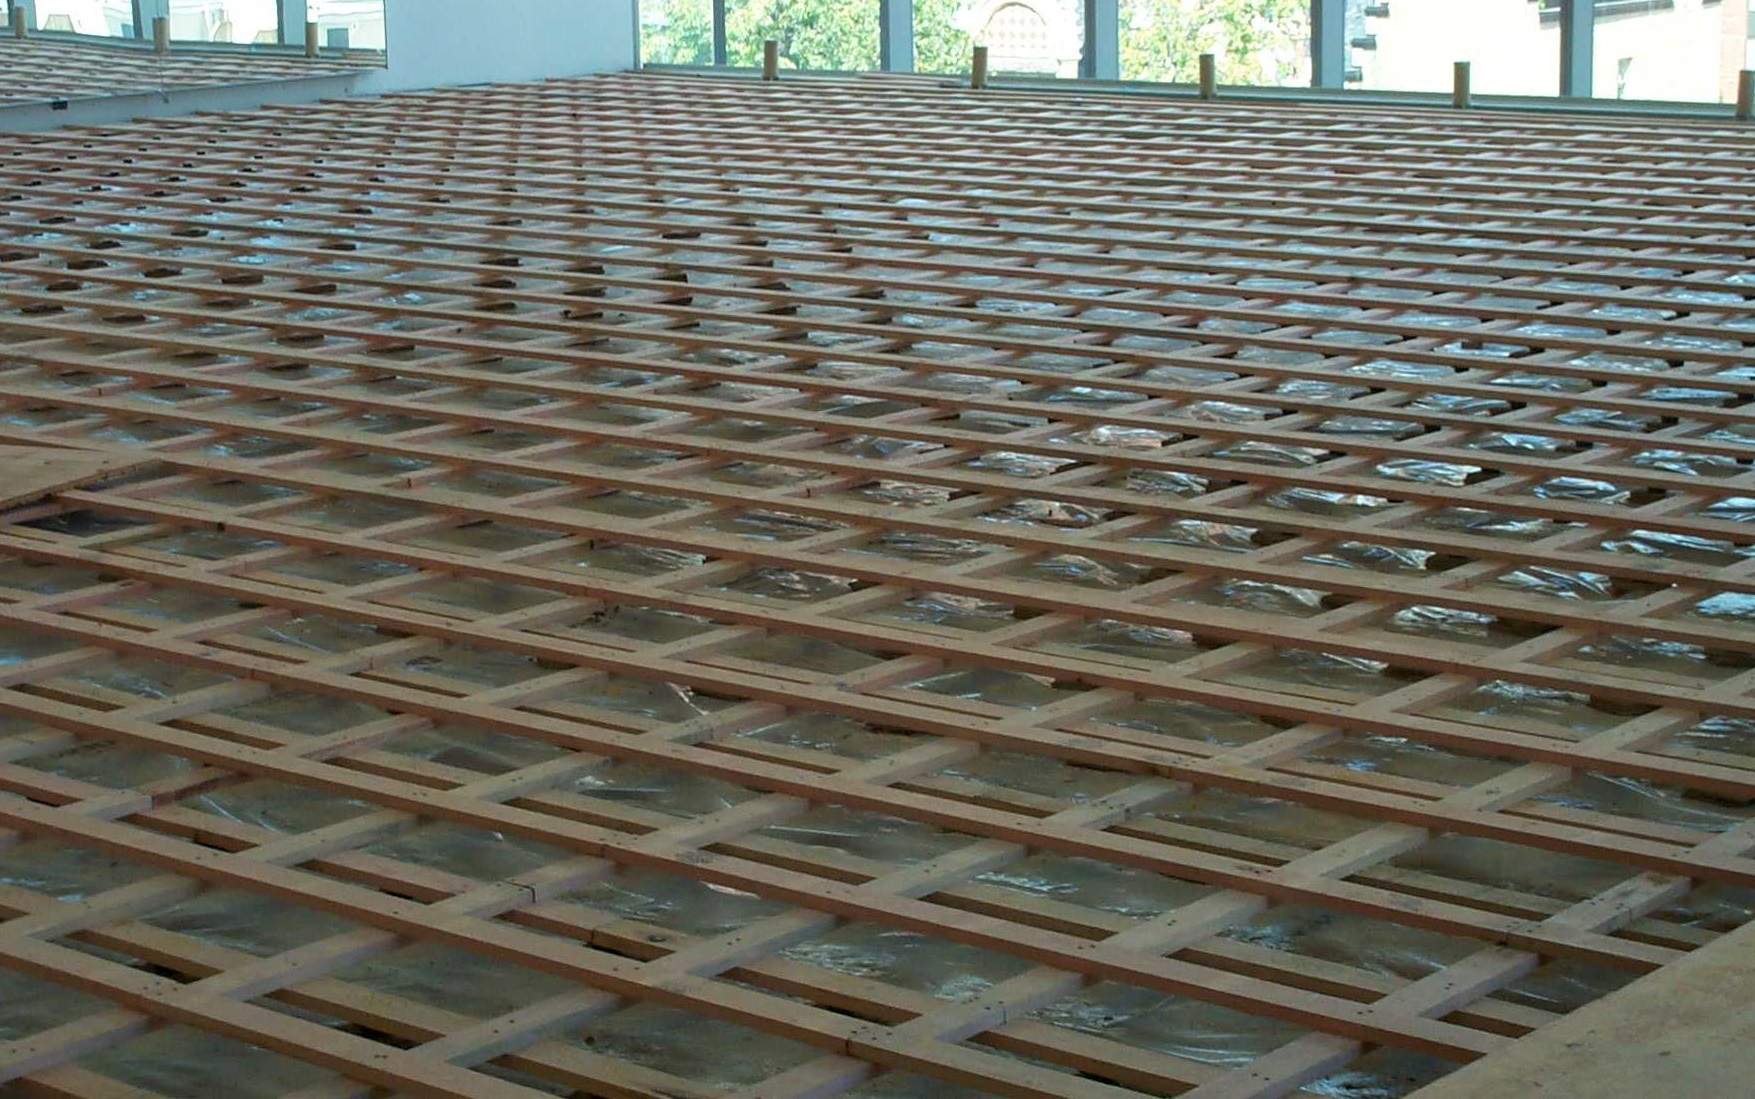 This photo, taken during Project Grand Jeté construction in 2005, shows the inner workings of NBS' studio floors. The layers of wooden boards act as a spring, making the floors ideal for dancers' bodies during hours of daily training. Photo by Nikki Chabrol.